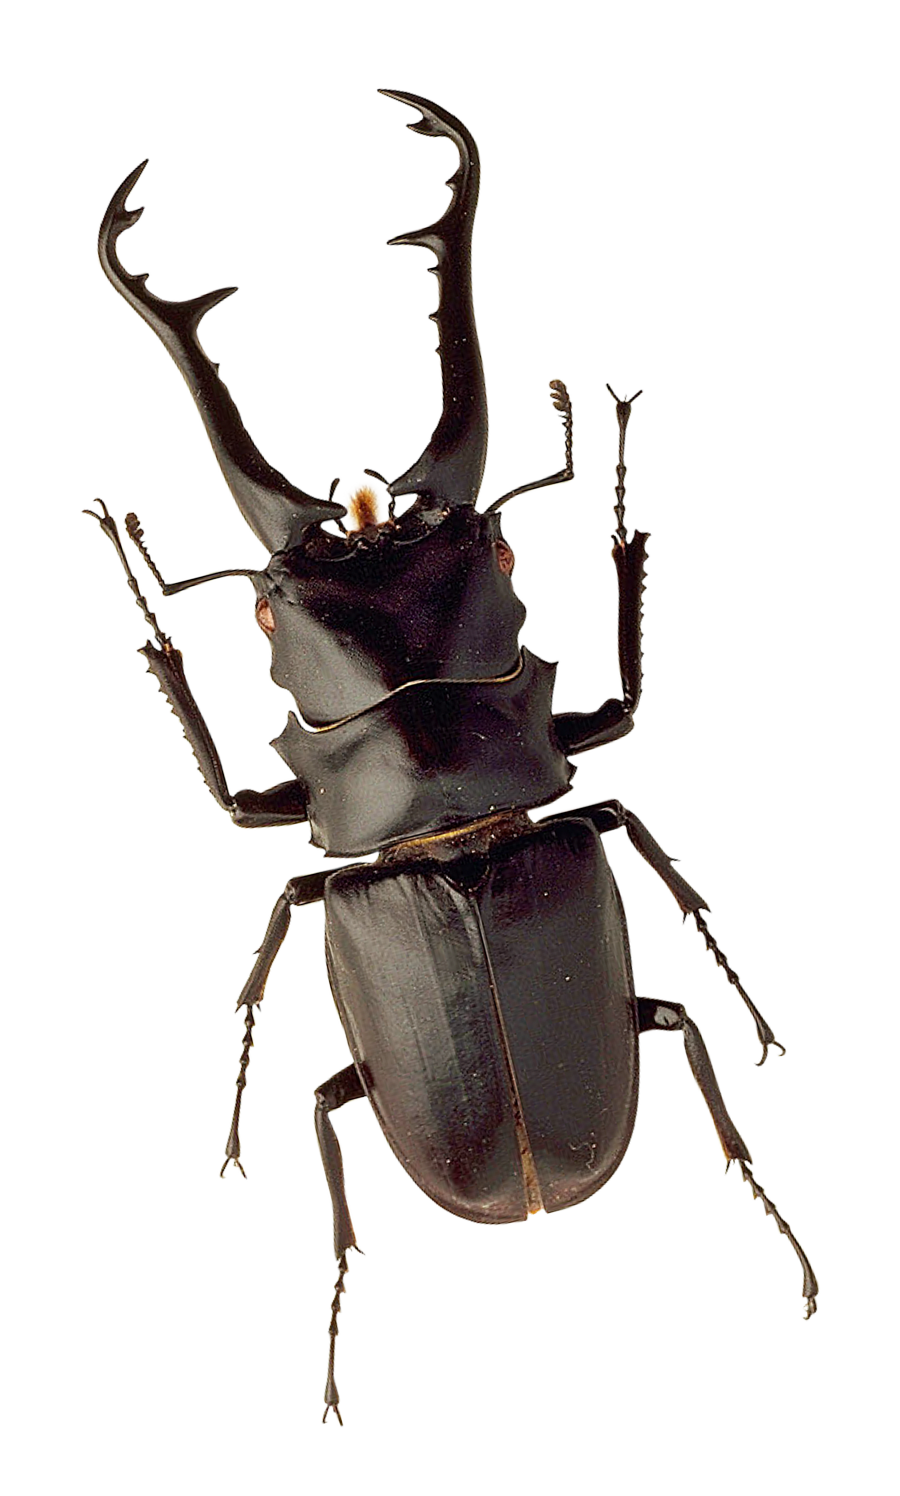 Png images pluspng insect. Beetle transparent clip art free stock